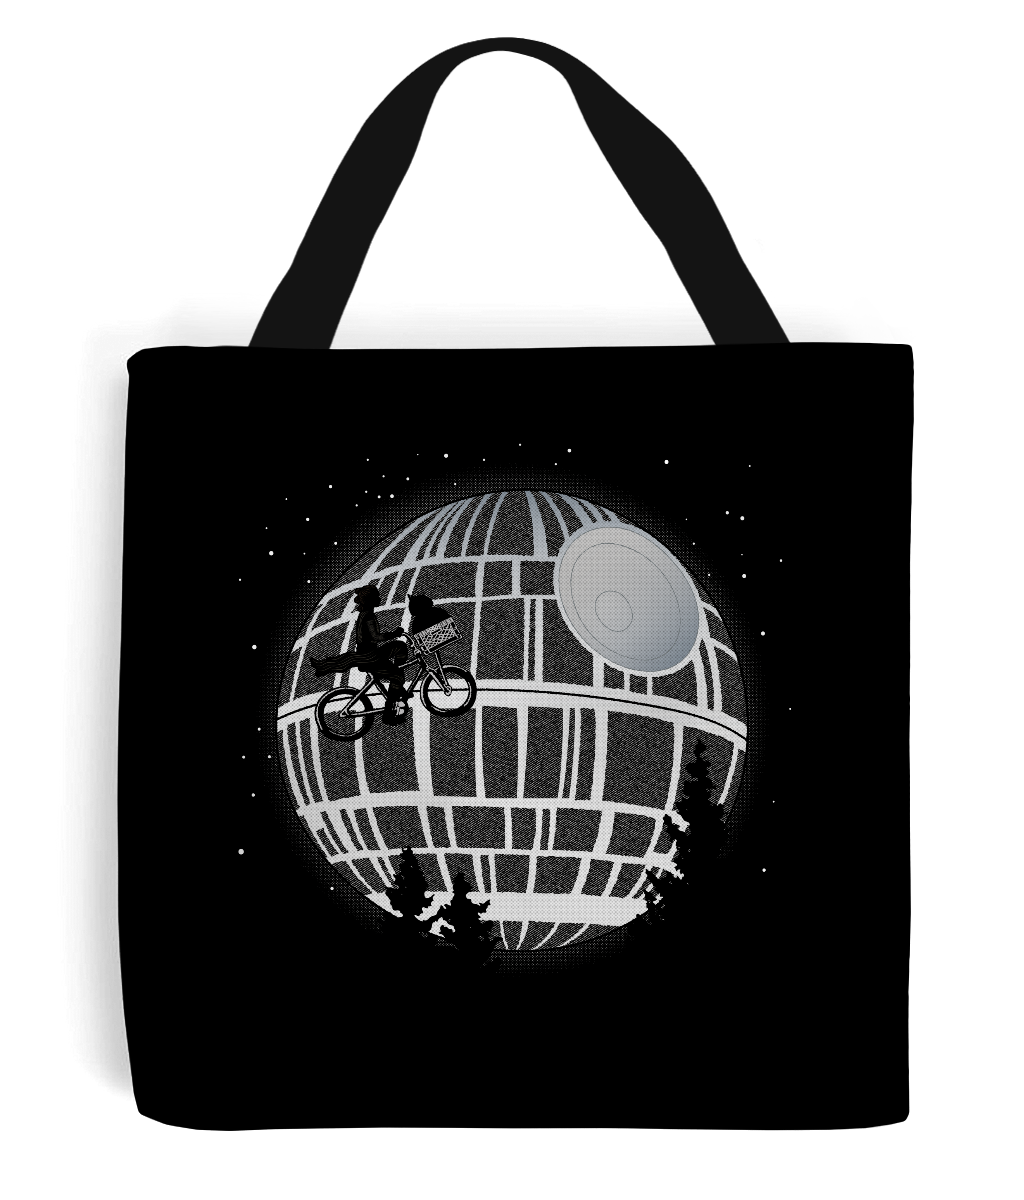 star wars death star tote bag